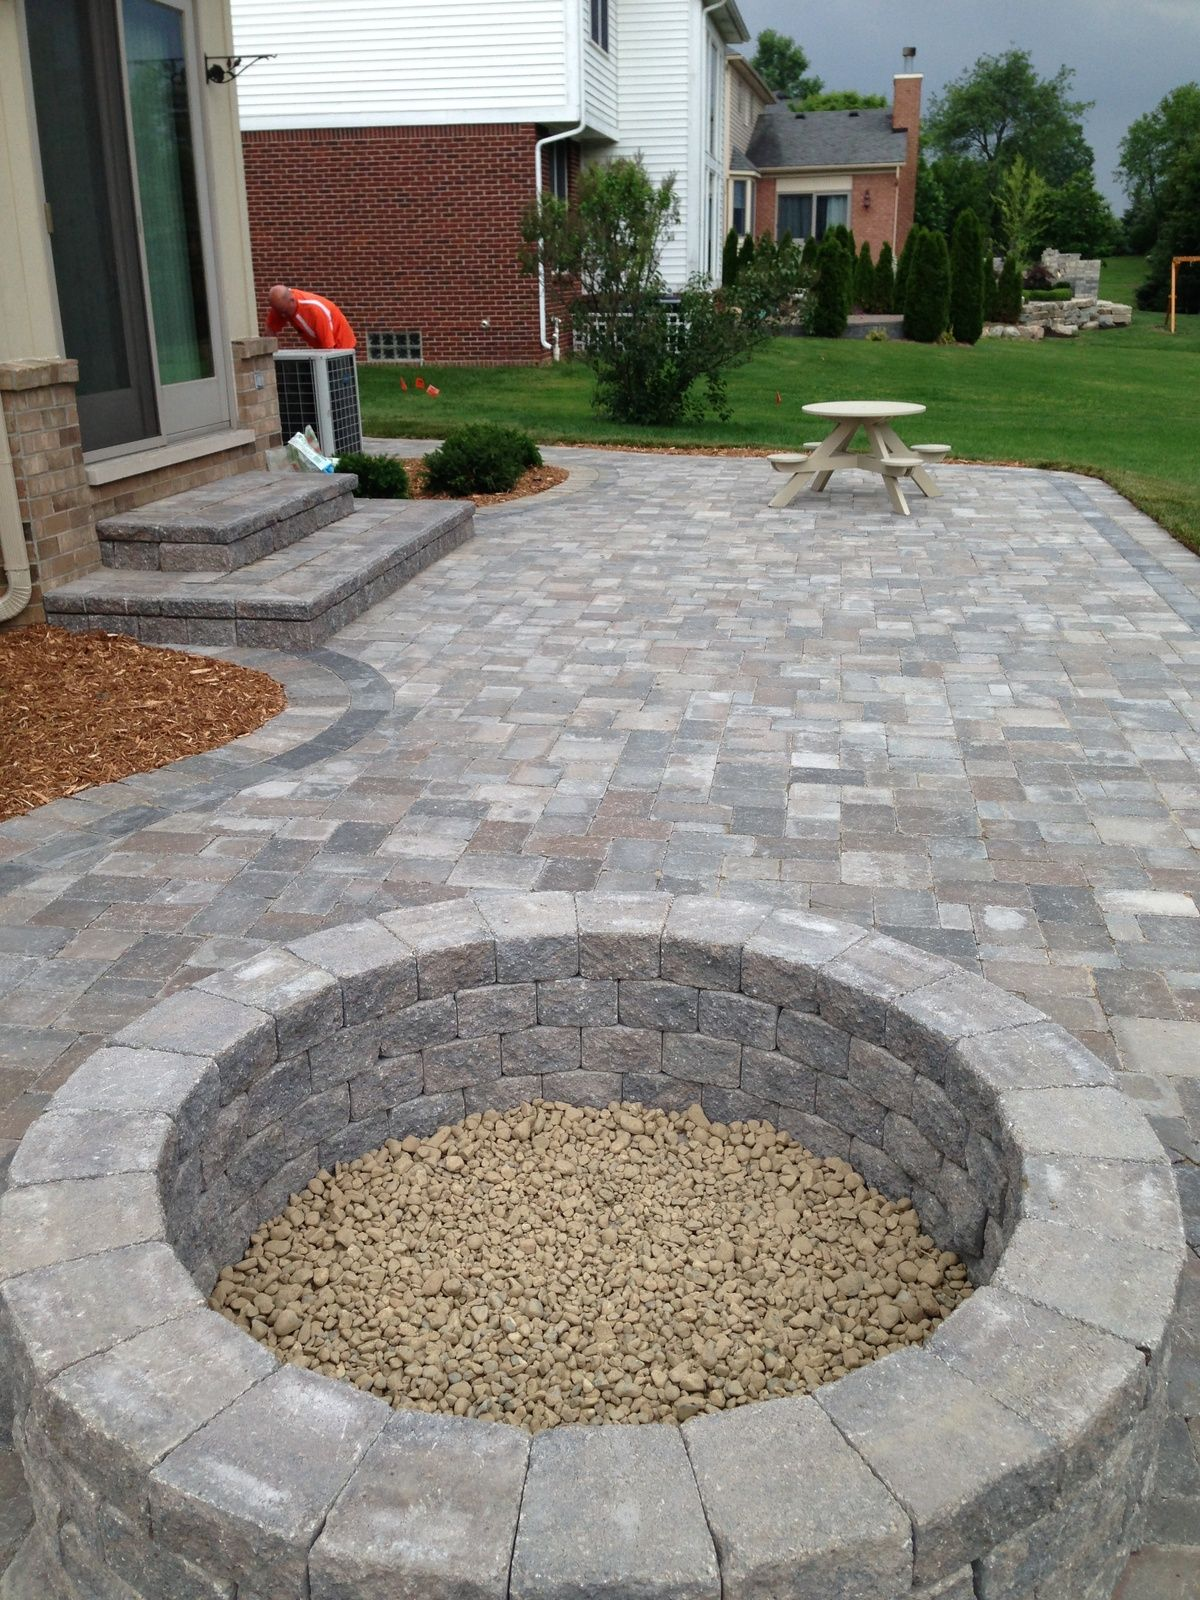 Stone Patio I like the fire pit and how it is open to the